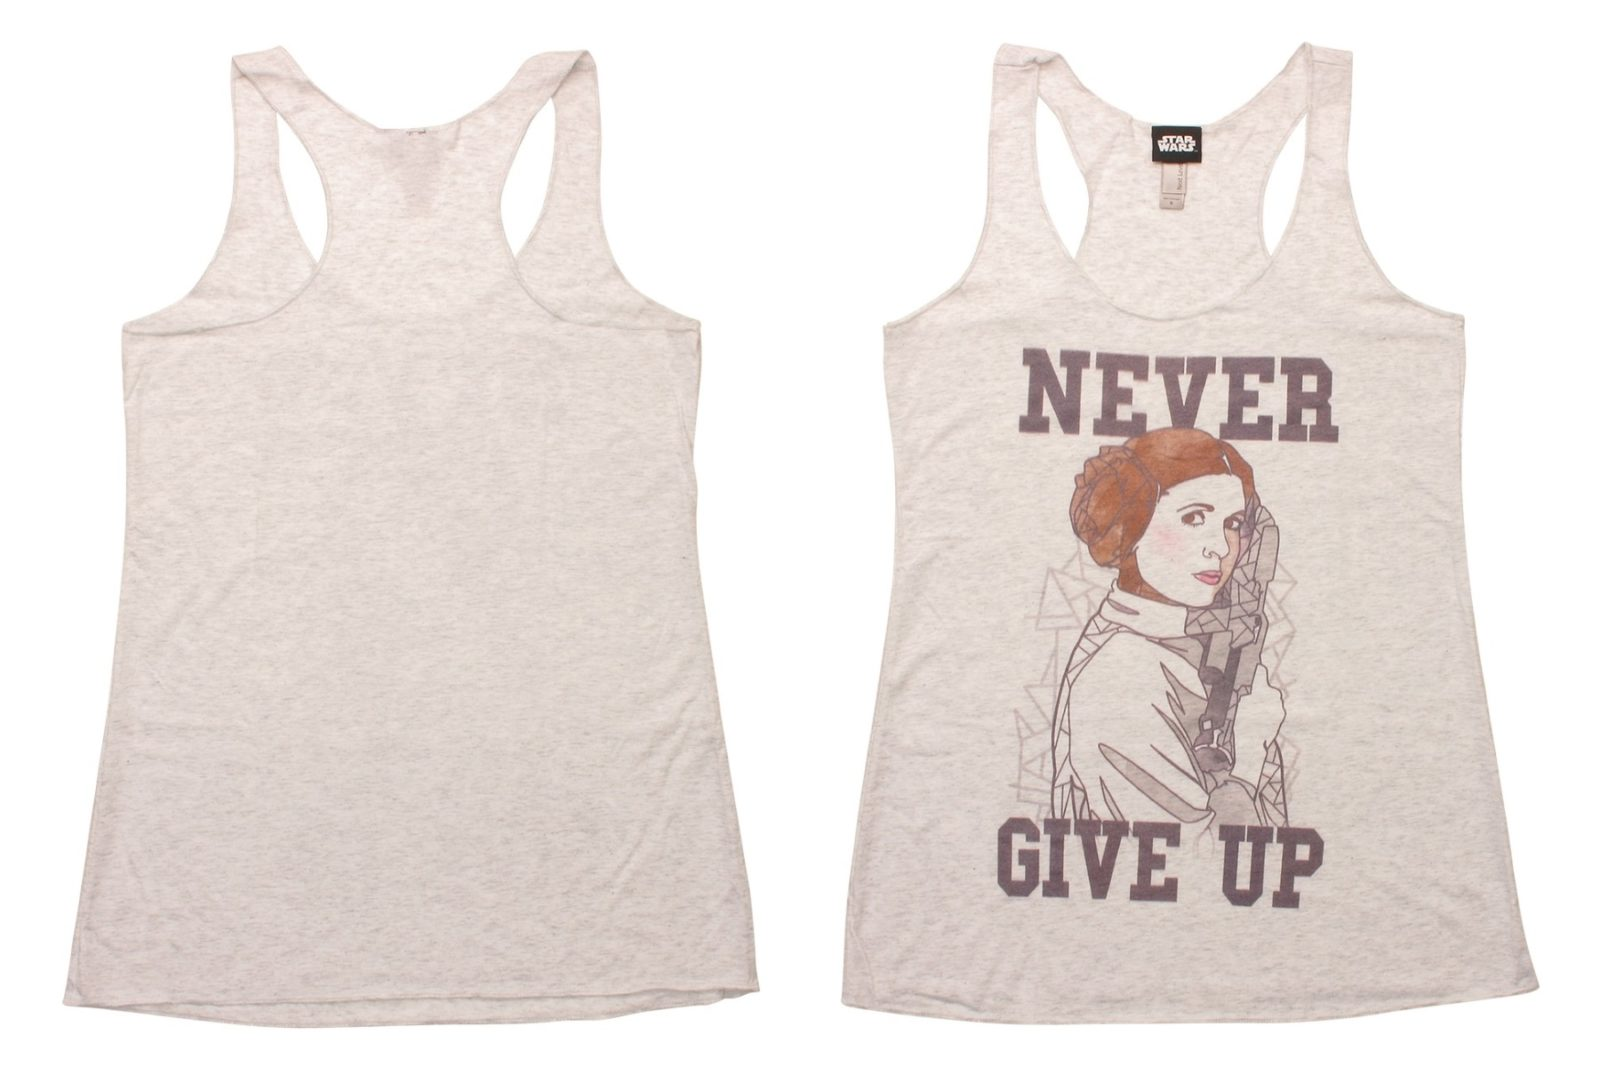 Women's Princess Leia Tank Top at Stylin Online